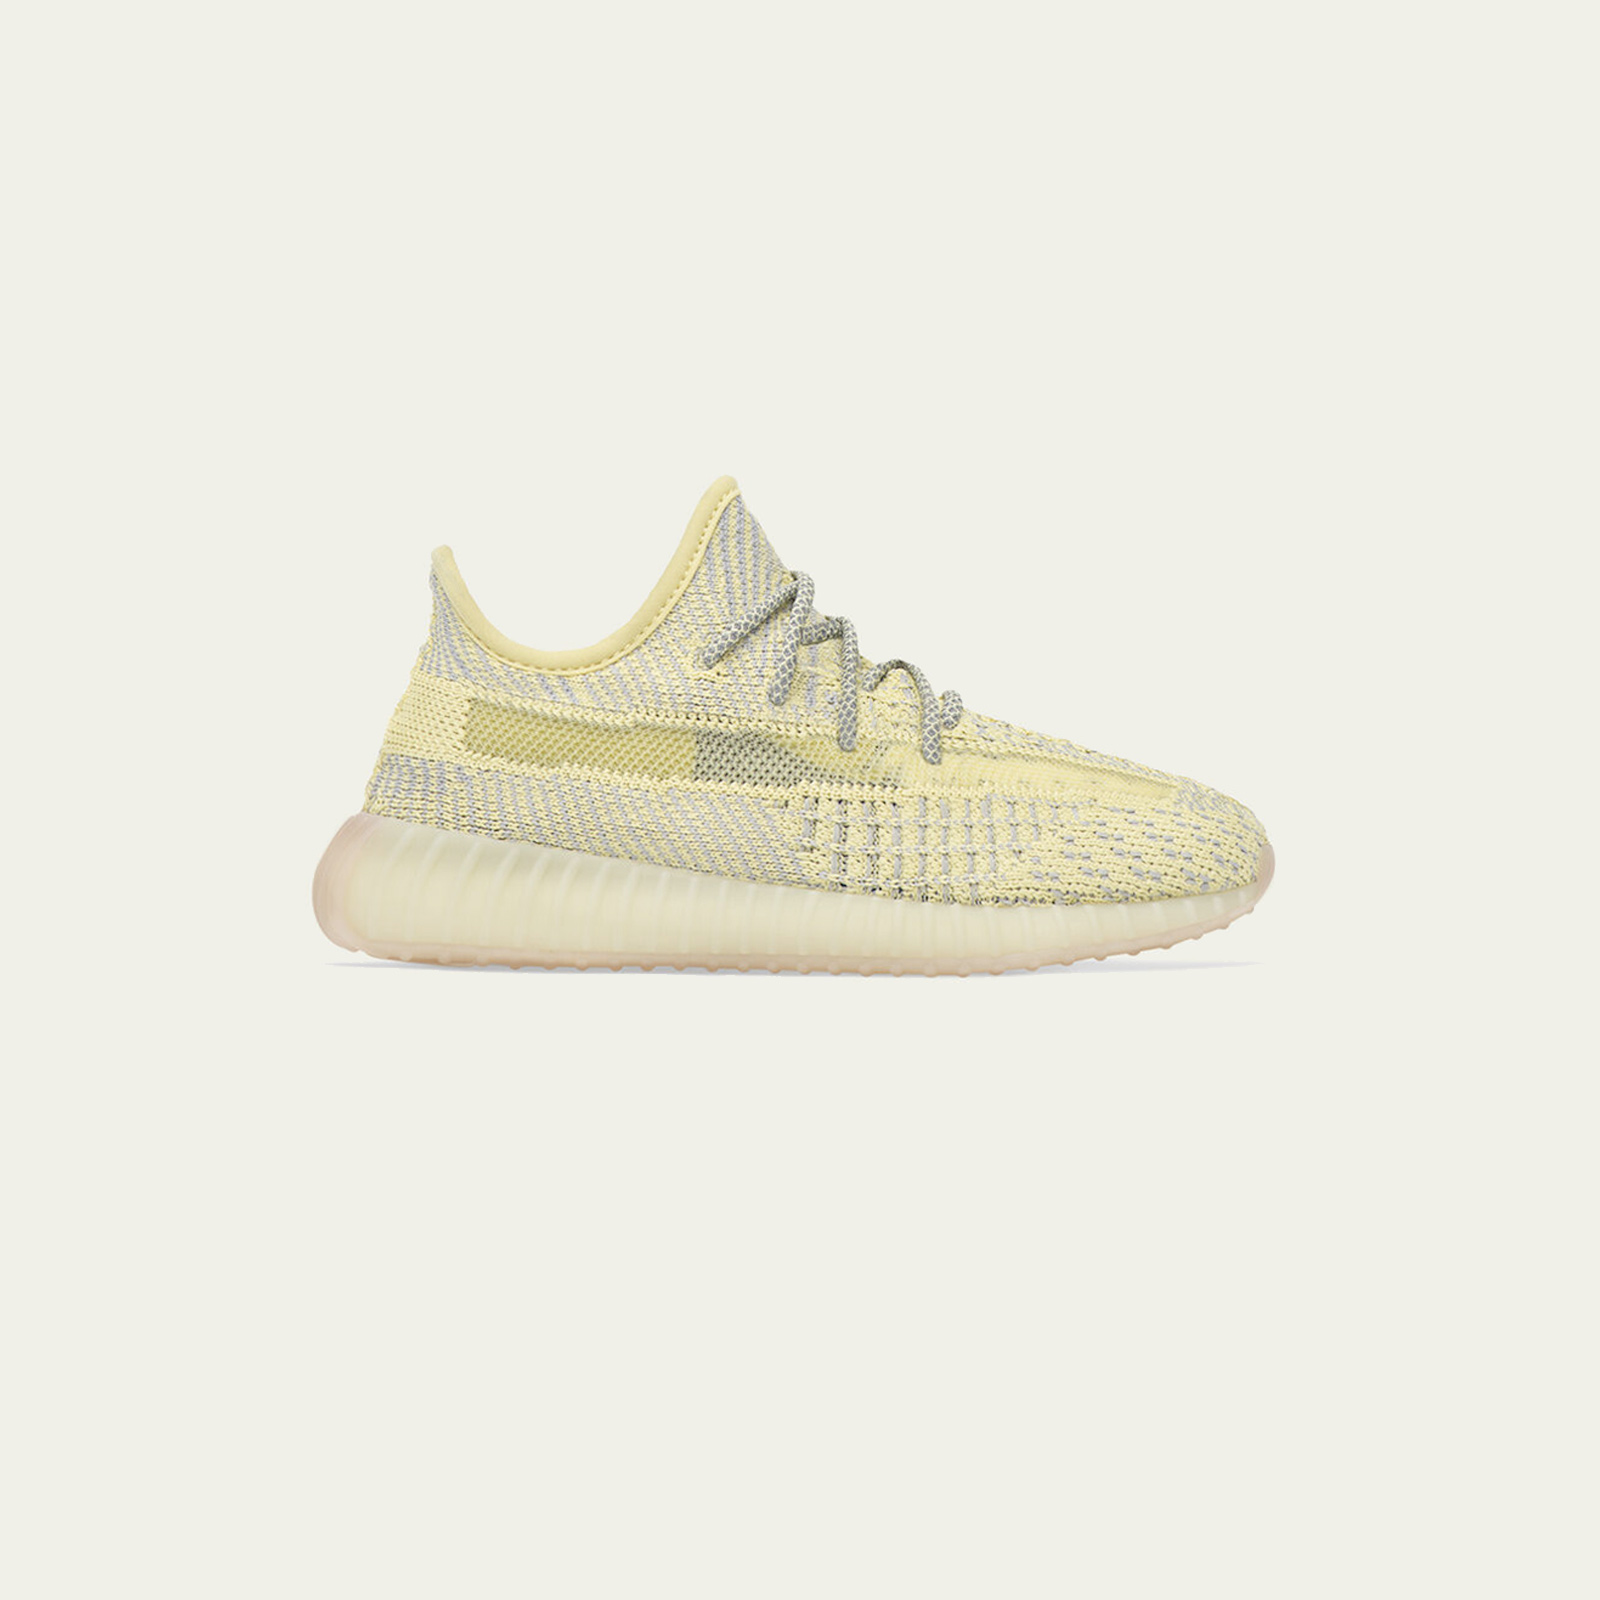 size 40 061d3 27644 adidas Yeezy Boost 350 V2 Kids - Fv3252 - Sneakersnstuff ...